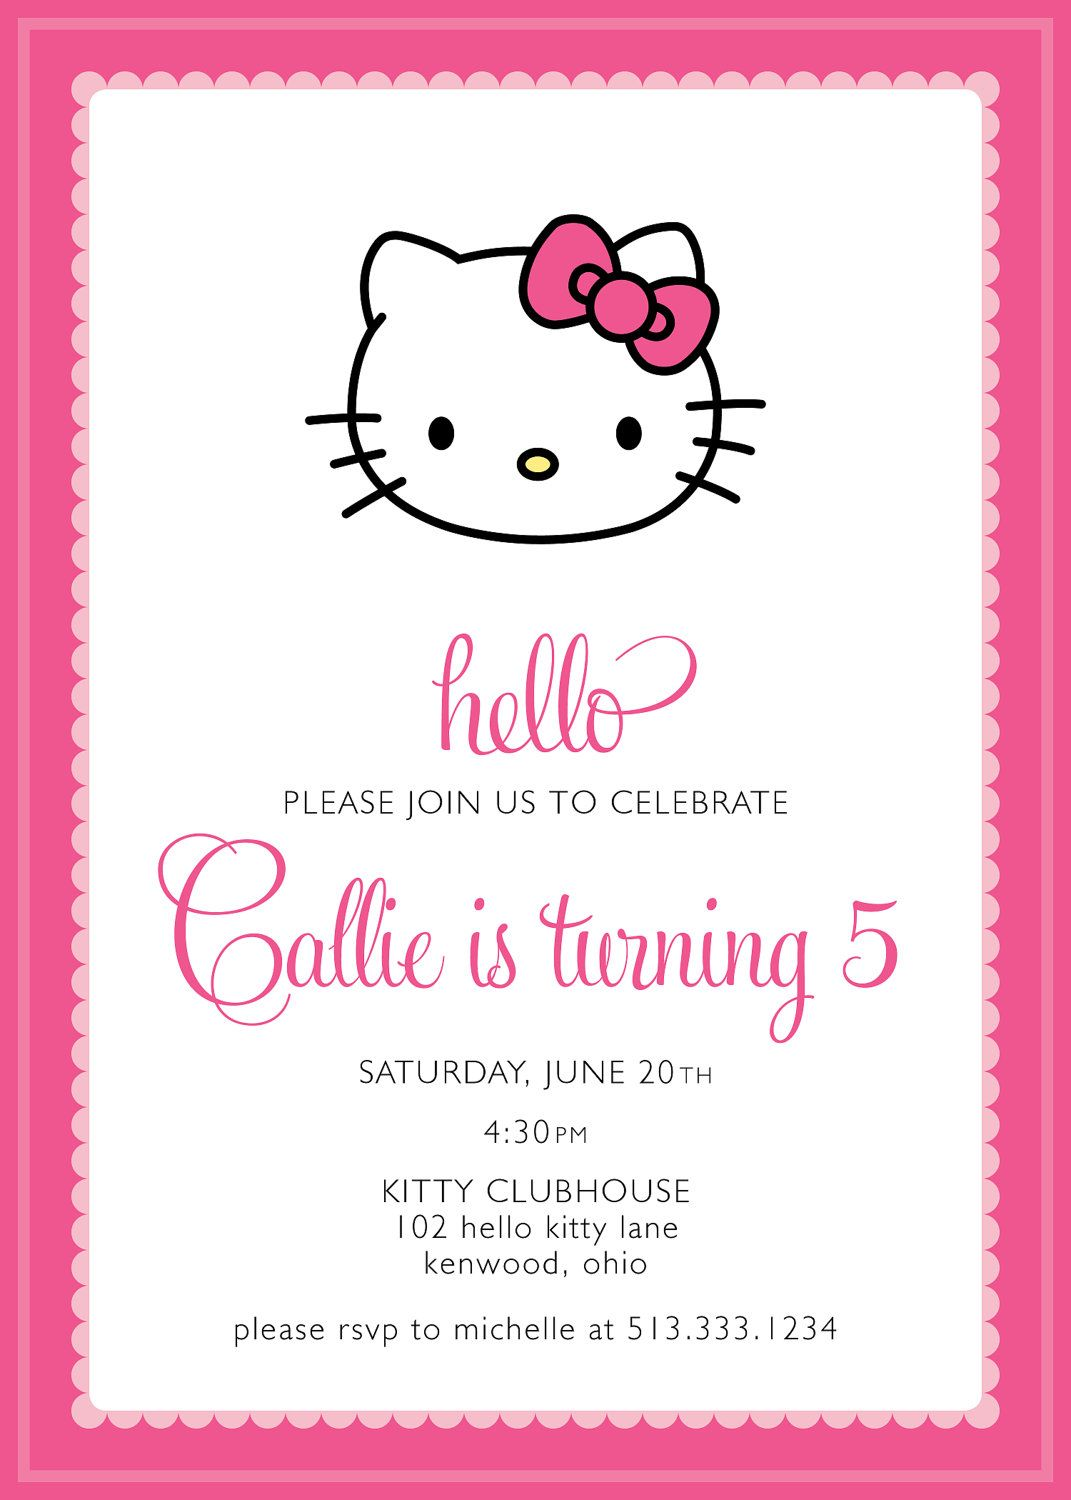 Hello Kitty Party Invitation Http Www Etsy Com Listing 96207667 Hello Kitty Part Hello Kitty Invitations Hello Kitty Party Hello Kitty Birthday Invitations